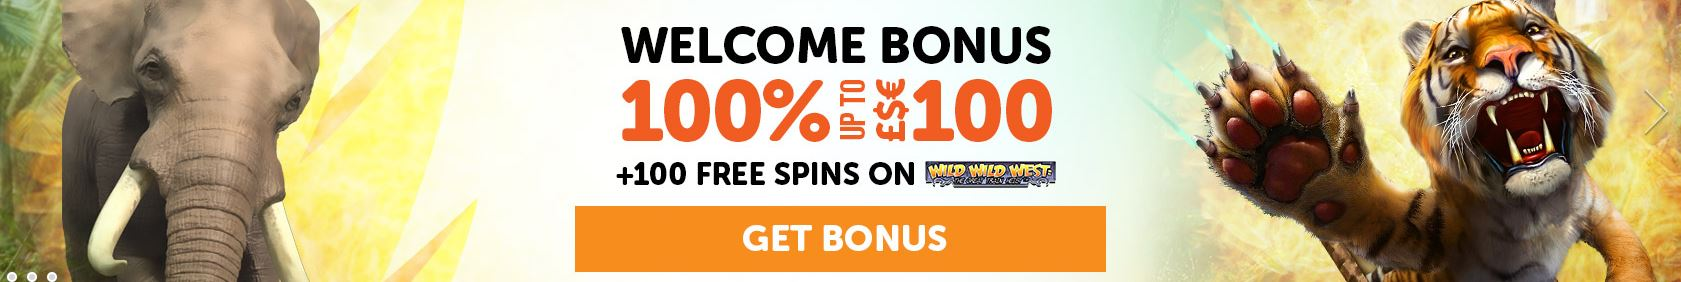 Welcome Bonus at Wild Slots